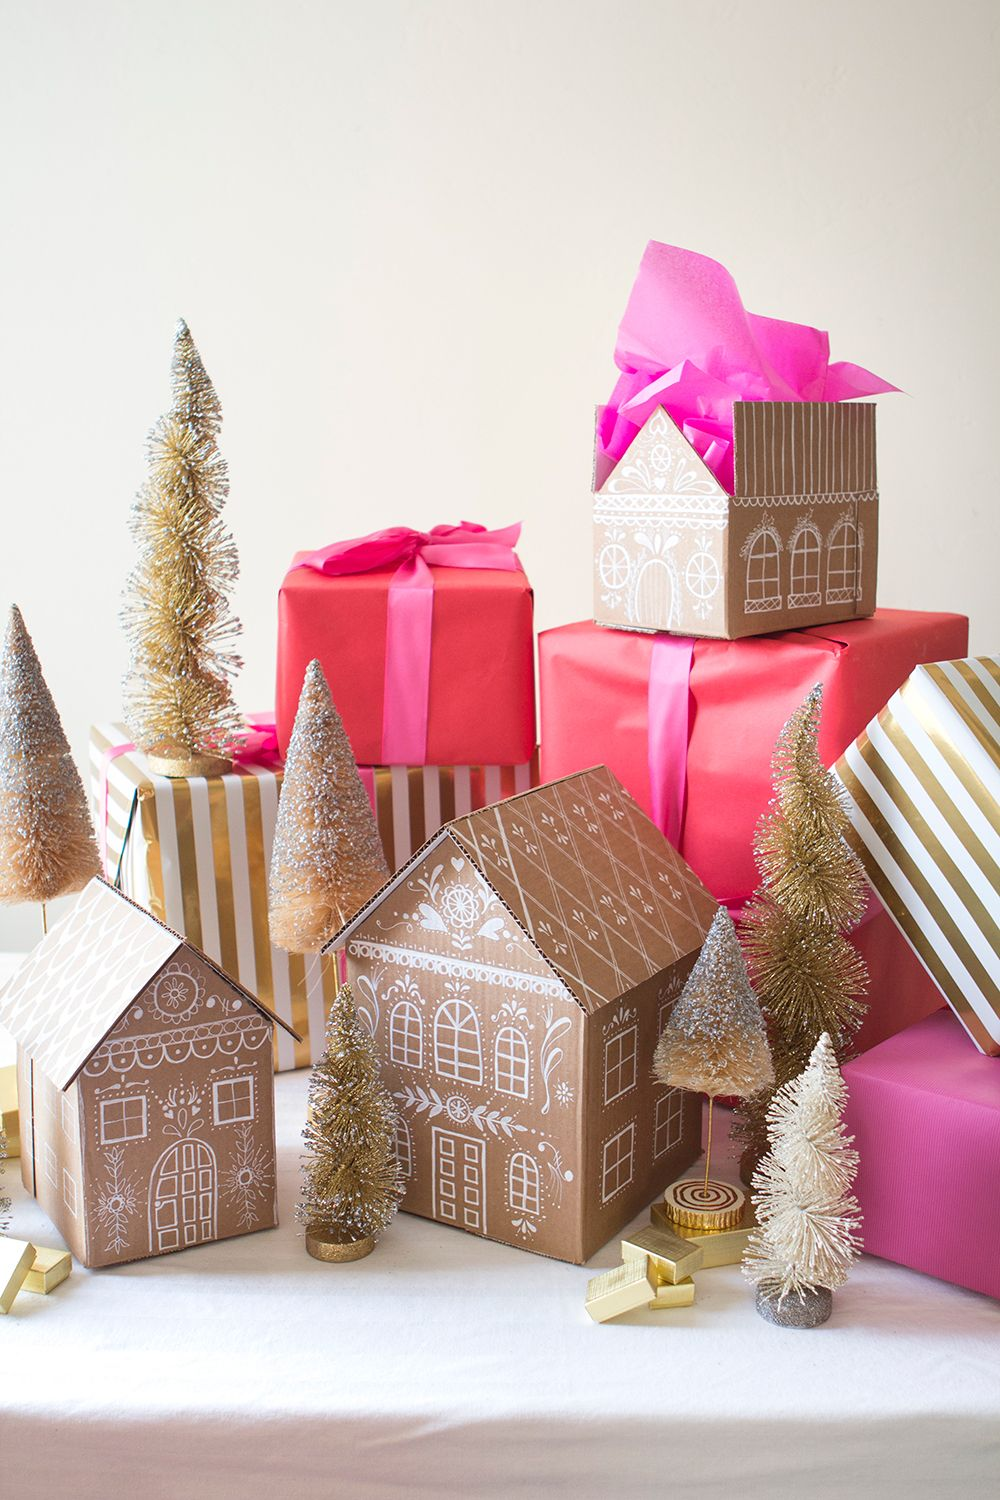 DIY Gingerbread house gift boxes Unique gifts suggestions for him